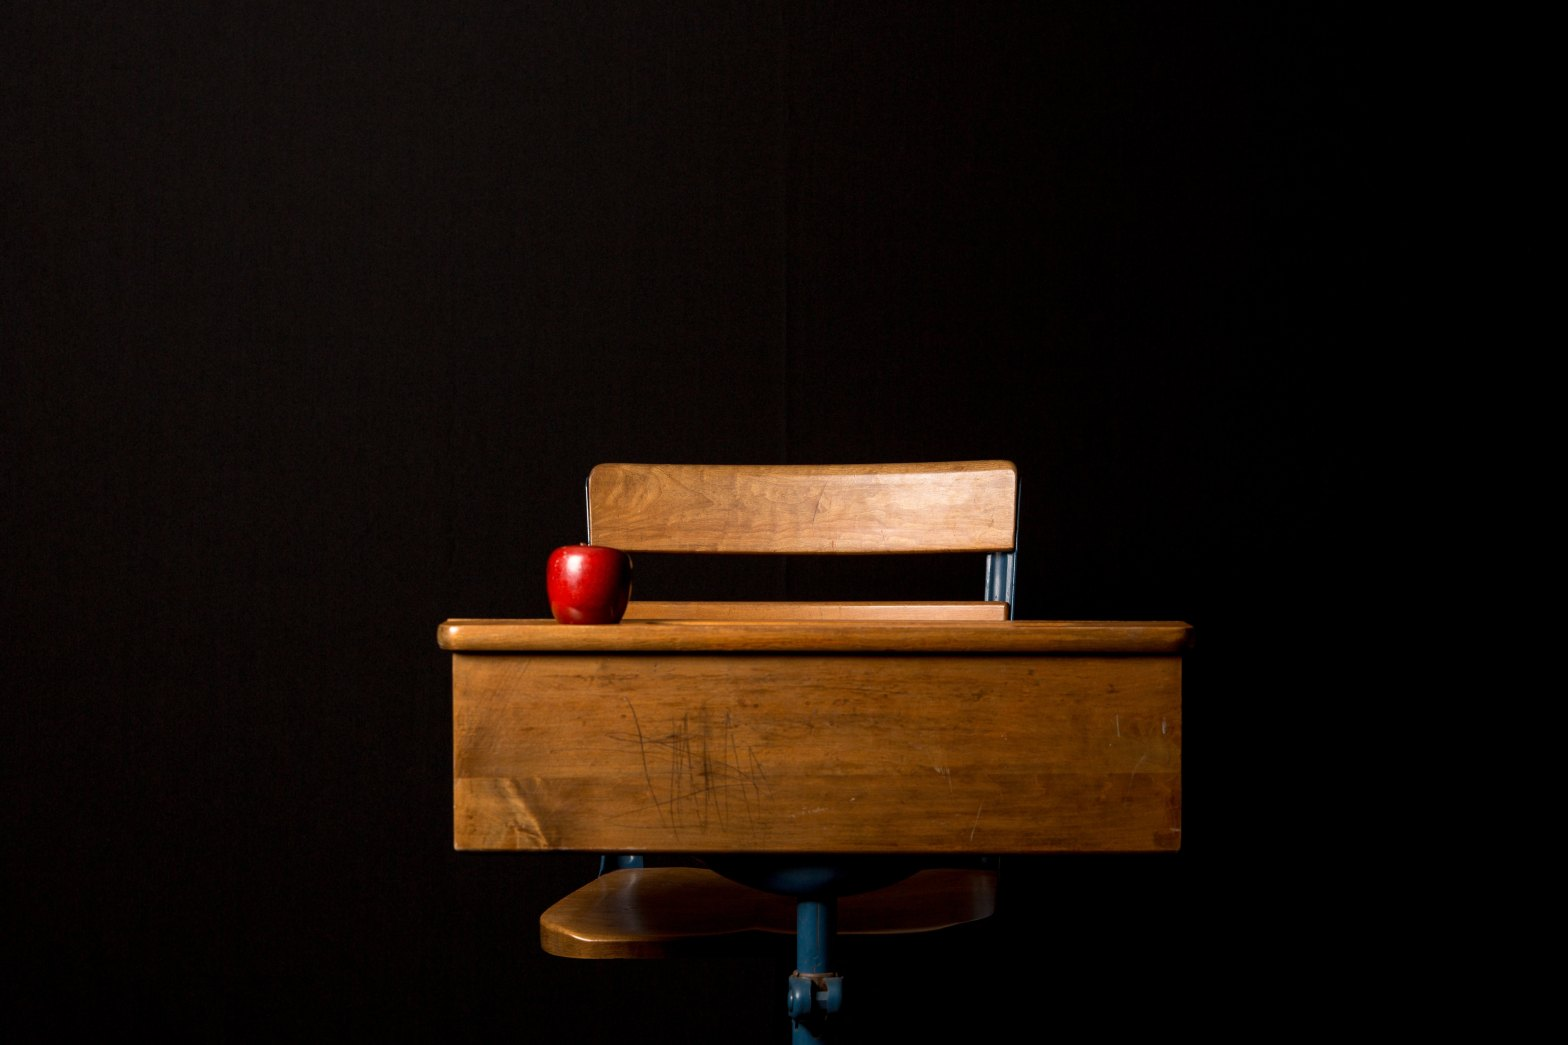 Apple on Desk. Photo by JJ Thompson on Unsplash.